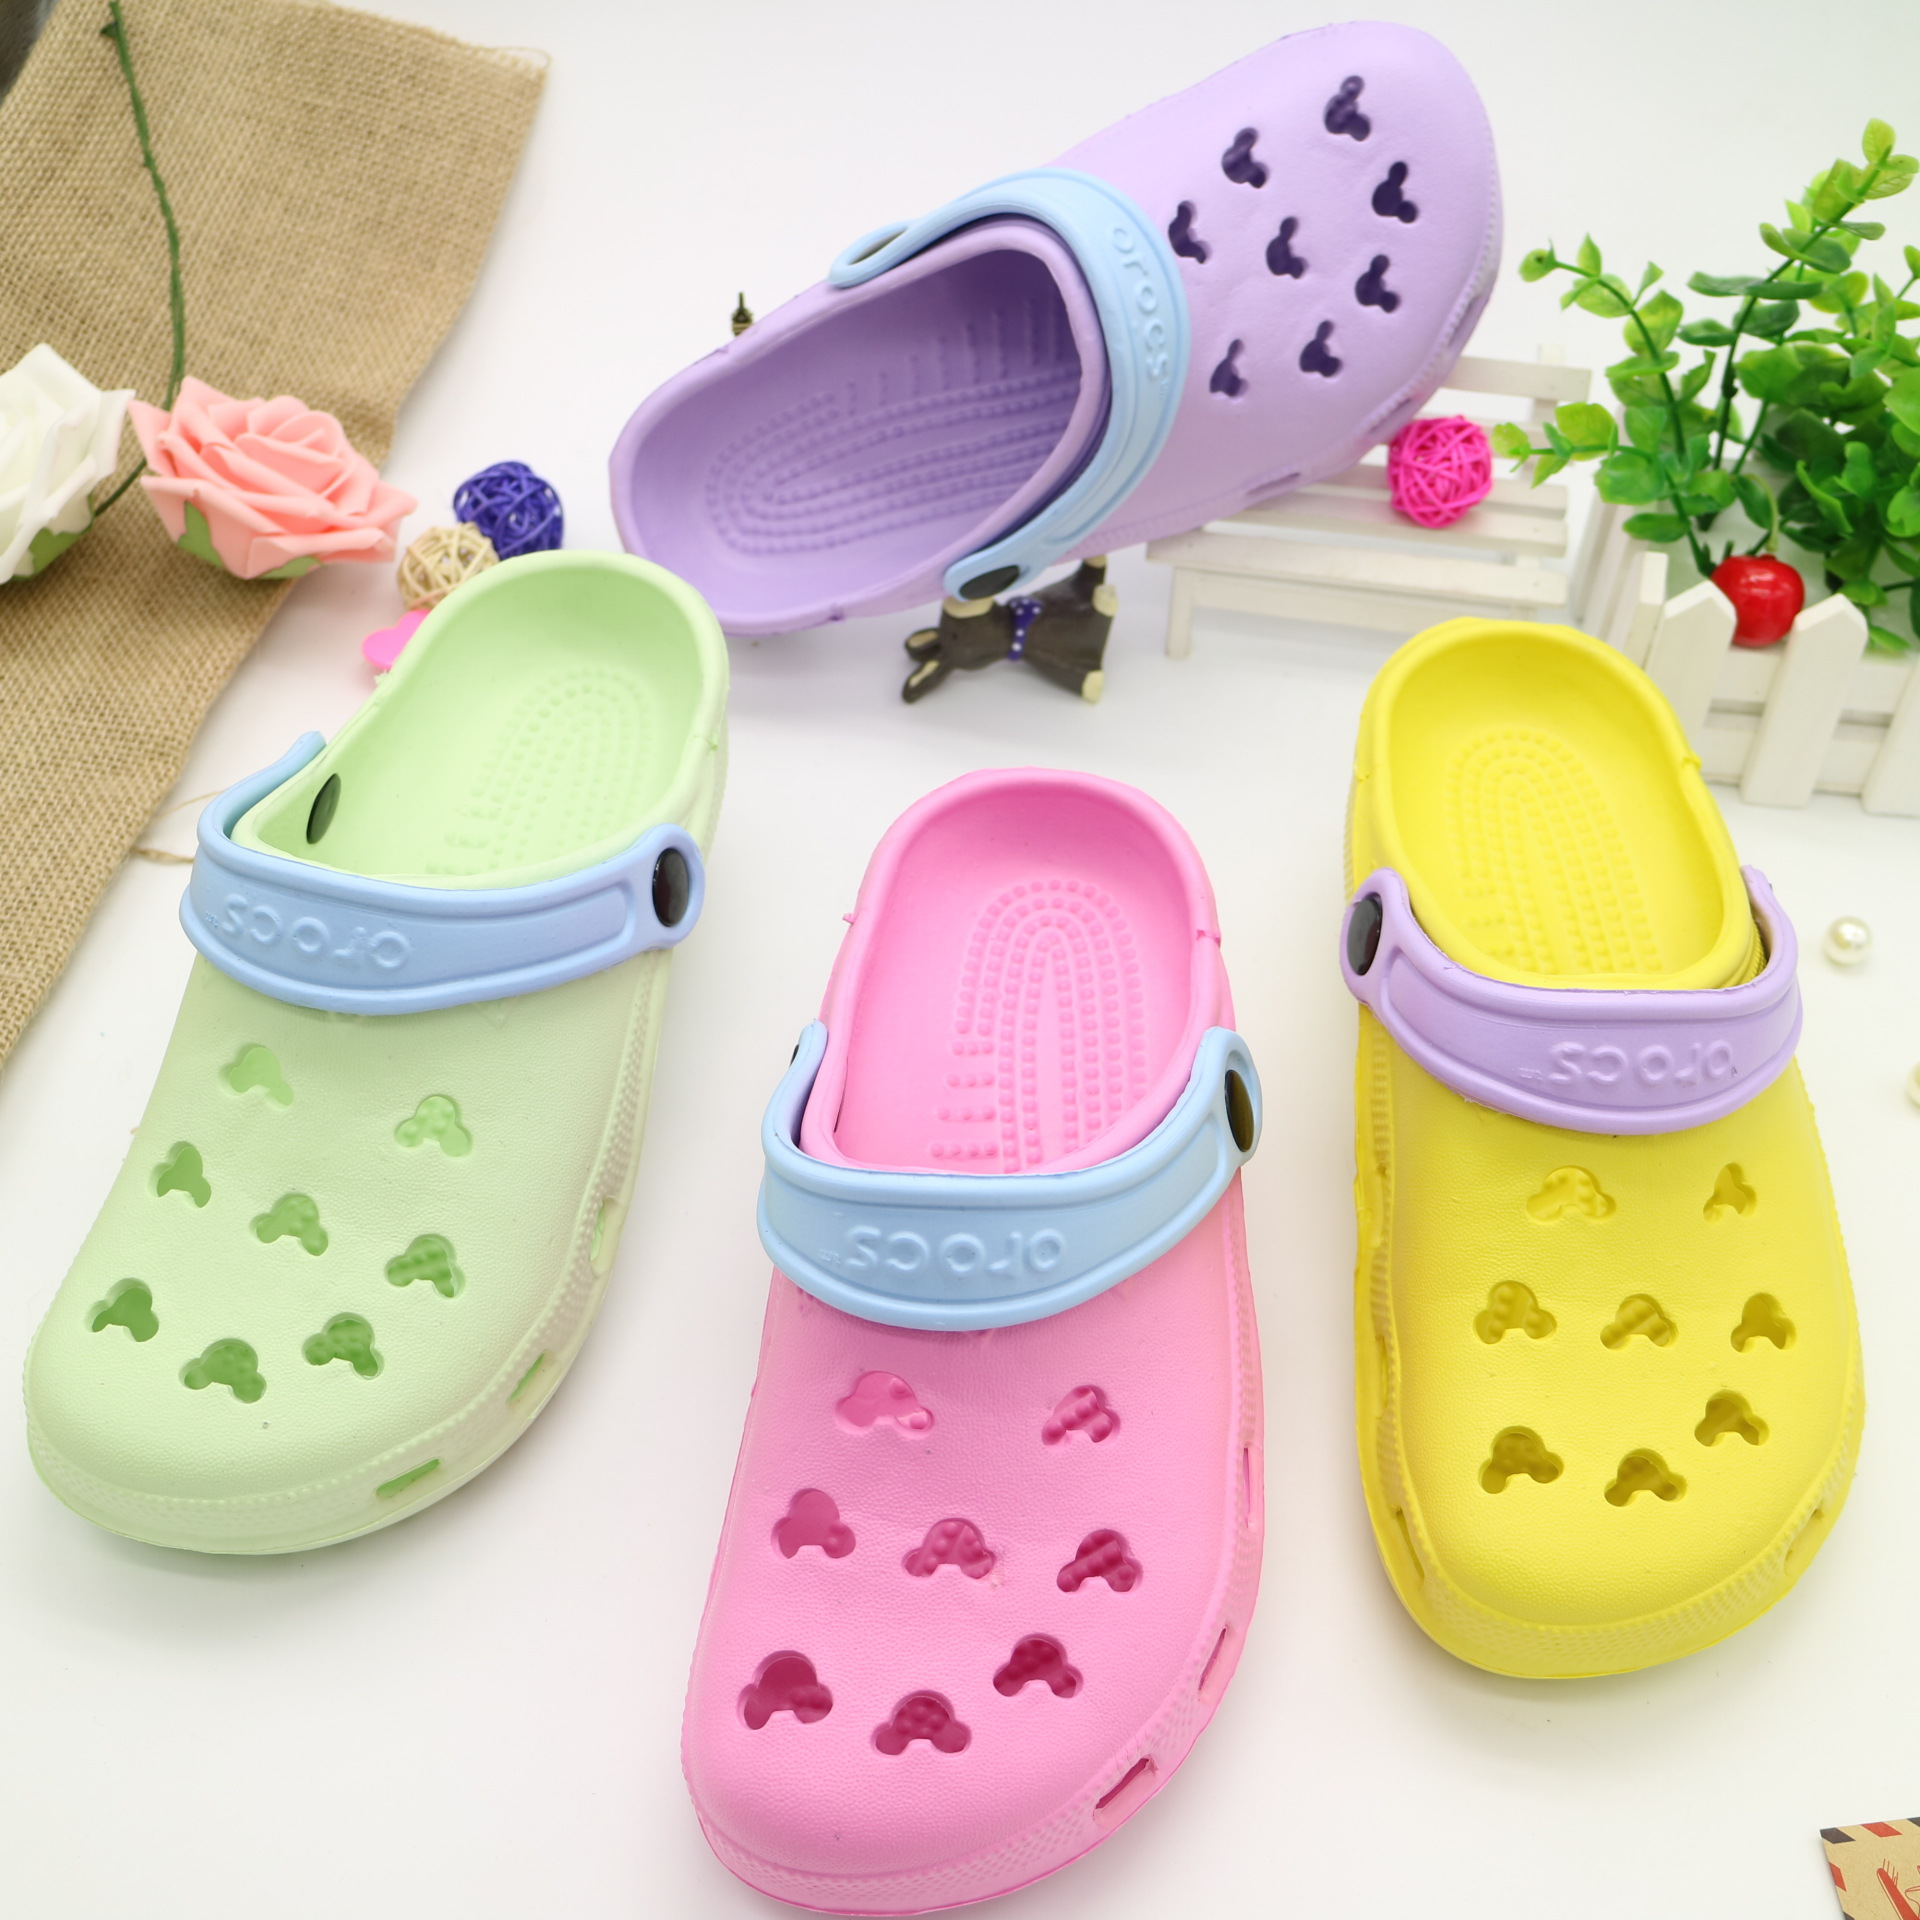 Slippers Beach Flats-Shoes Home Sandals Outdoor Garden Summer Women New N100 Breathable